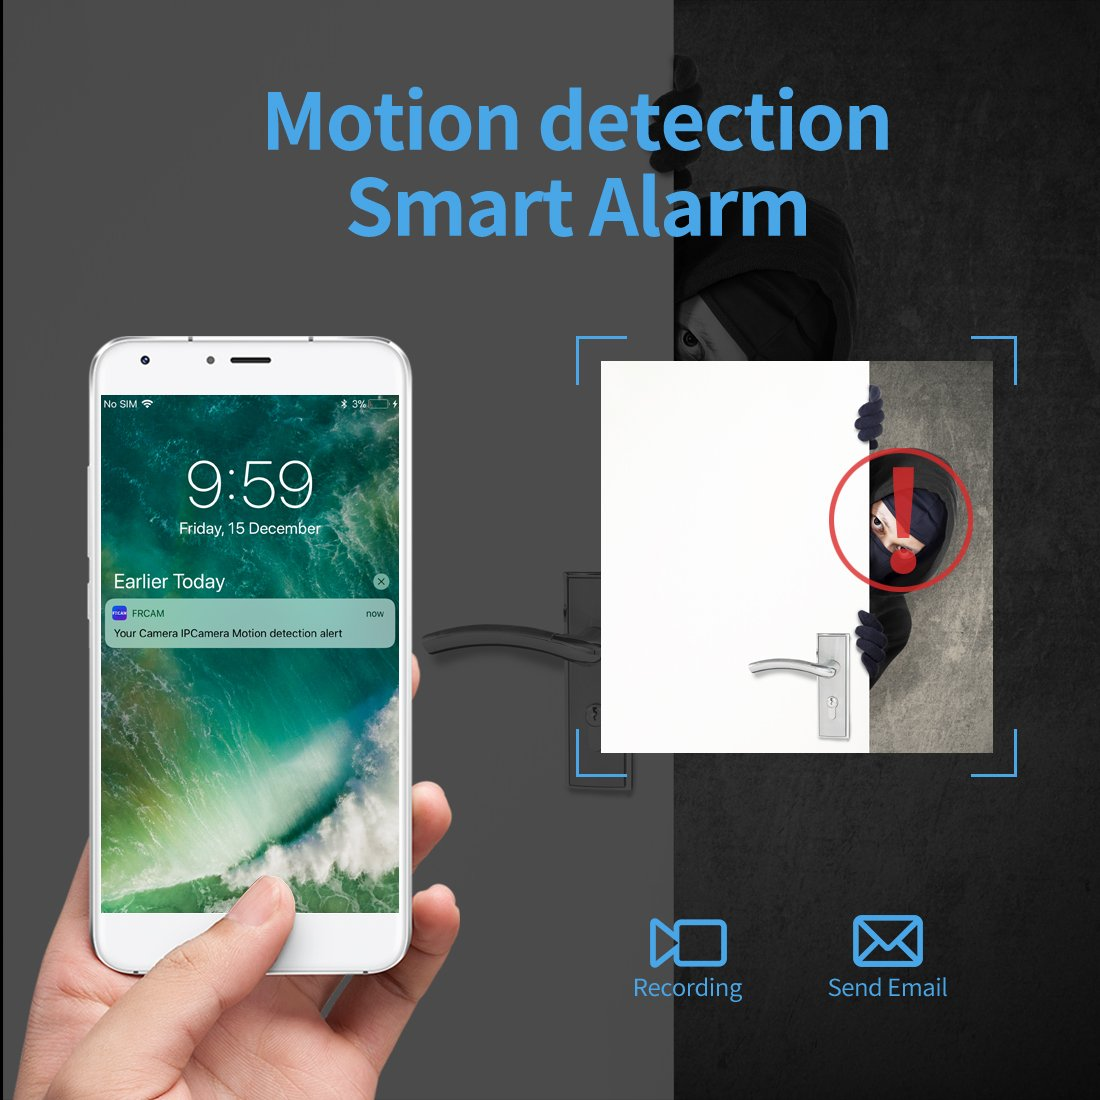 Hidden Camera,FREDI Spy Camera 720P Wireless WiFi IP Cameras Home/Office Security Mini Portable Covert Nanny Cam Works for iPhone iOS/Android mobilephone by FREDI (Image #4)